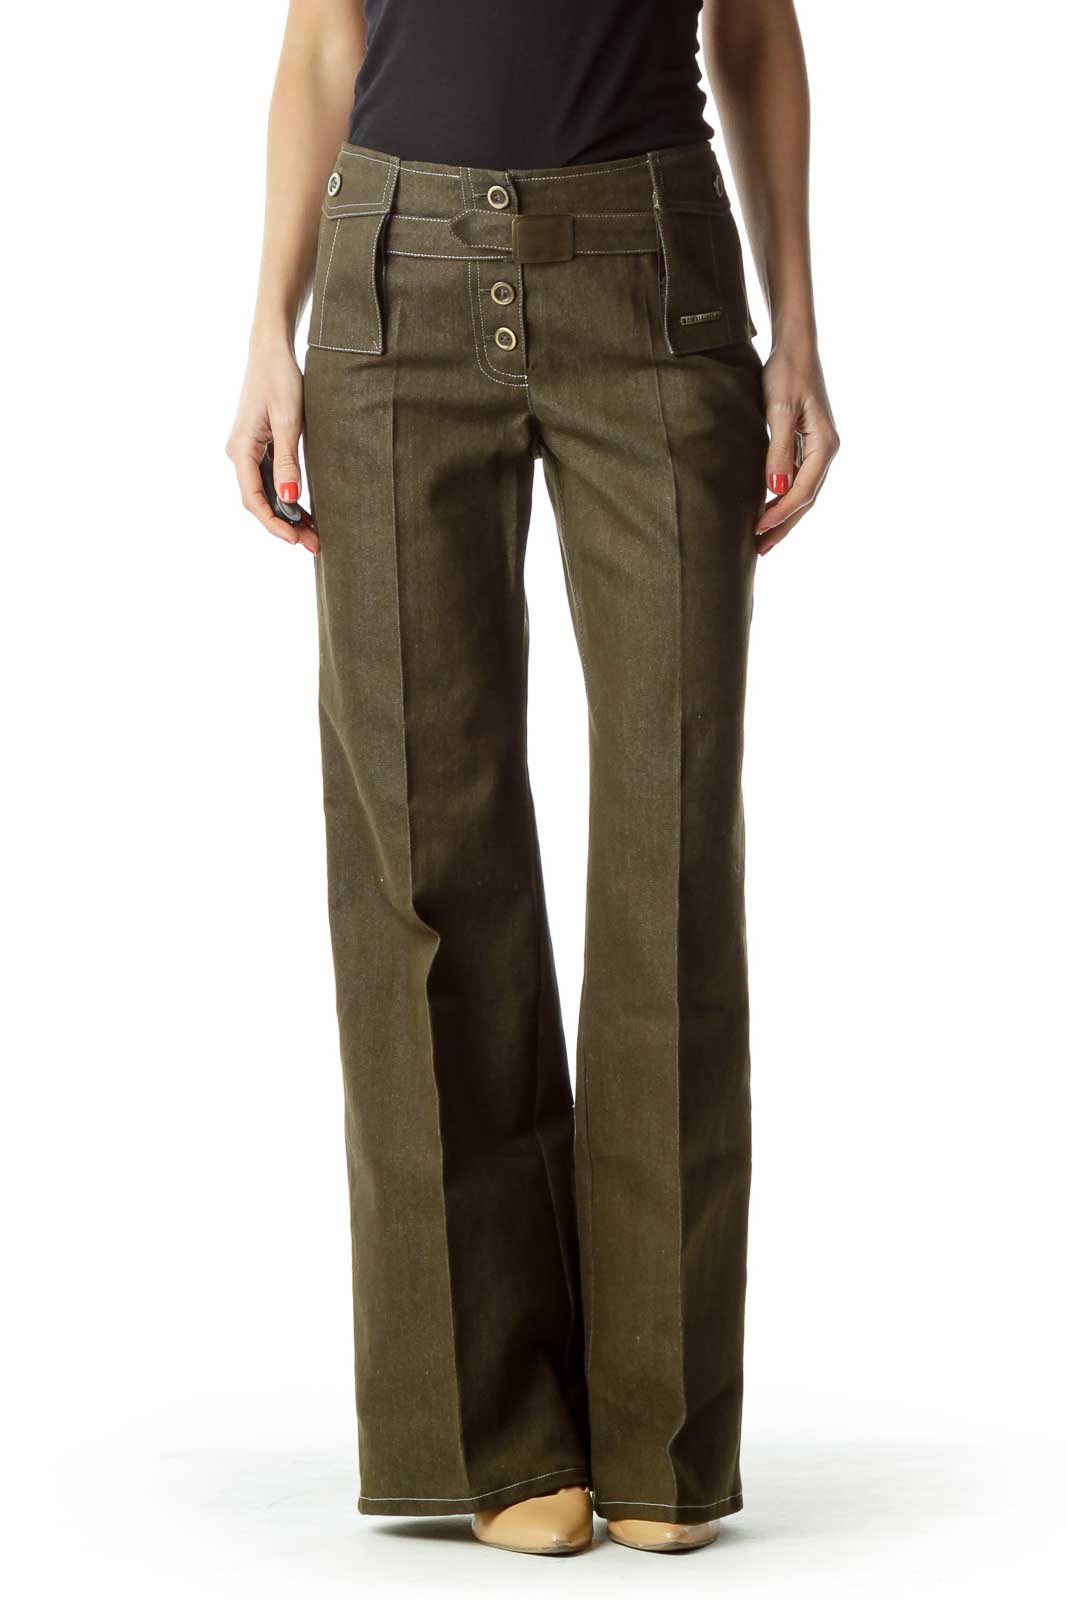 Green Buttoned Wide Leg Pant Front